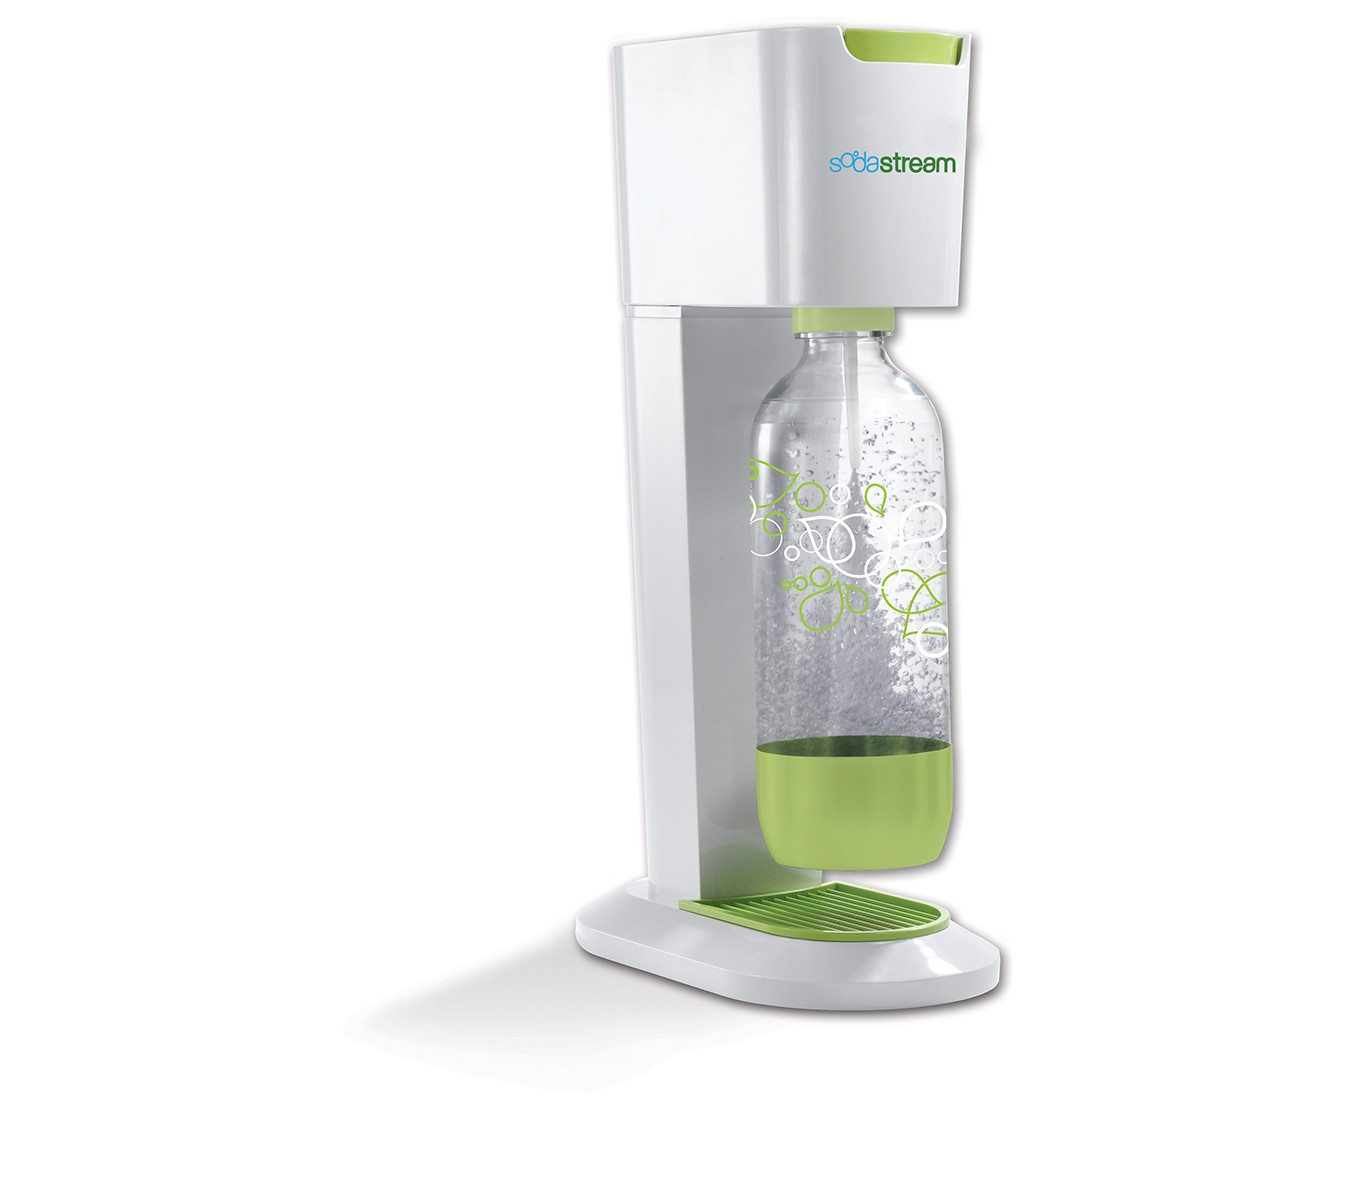 Sodastream   Sodastream Fridges & Freezers   David JonesSame Day Click & Collect· Shop Luxury Brands Now· AfterPay Available· Easy Returns.